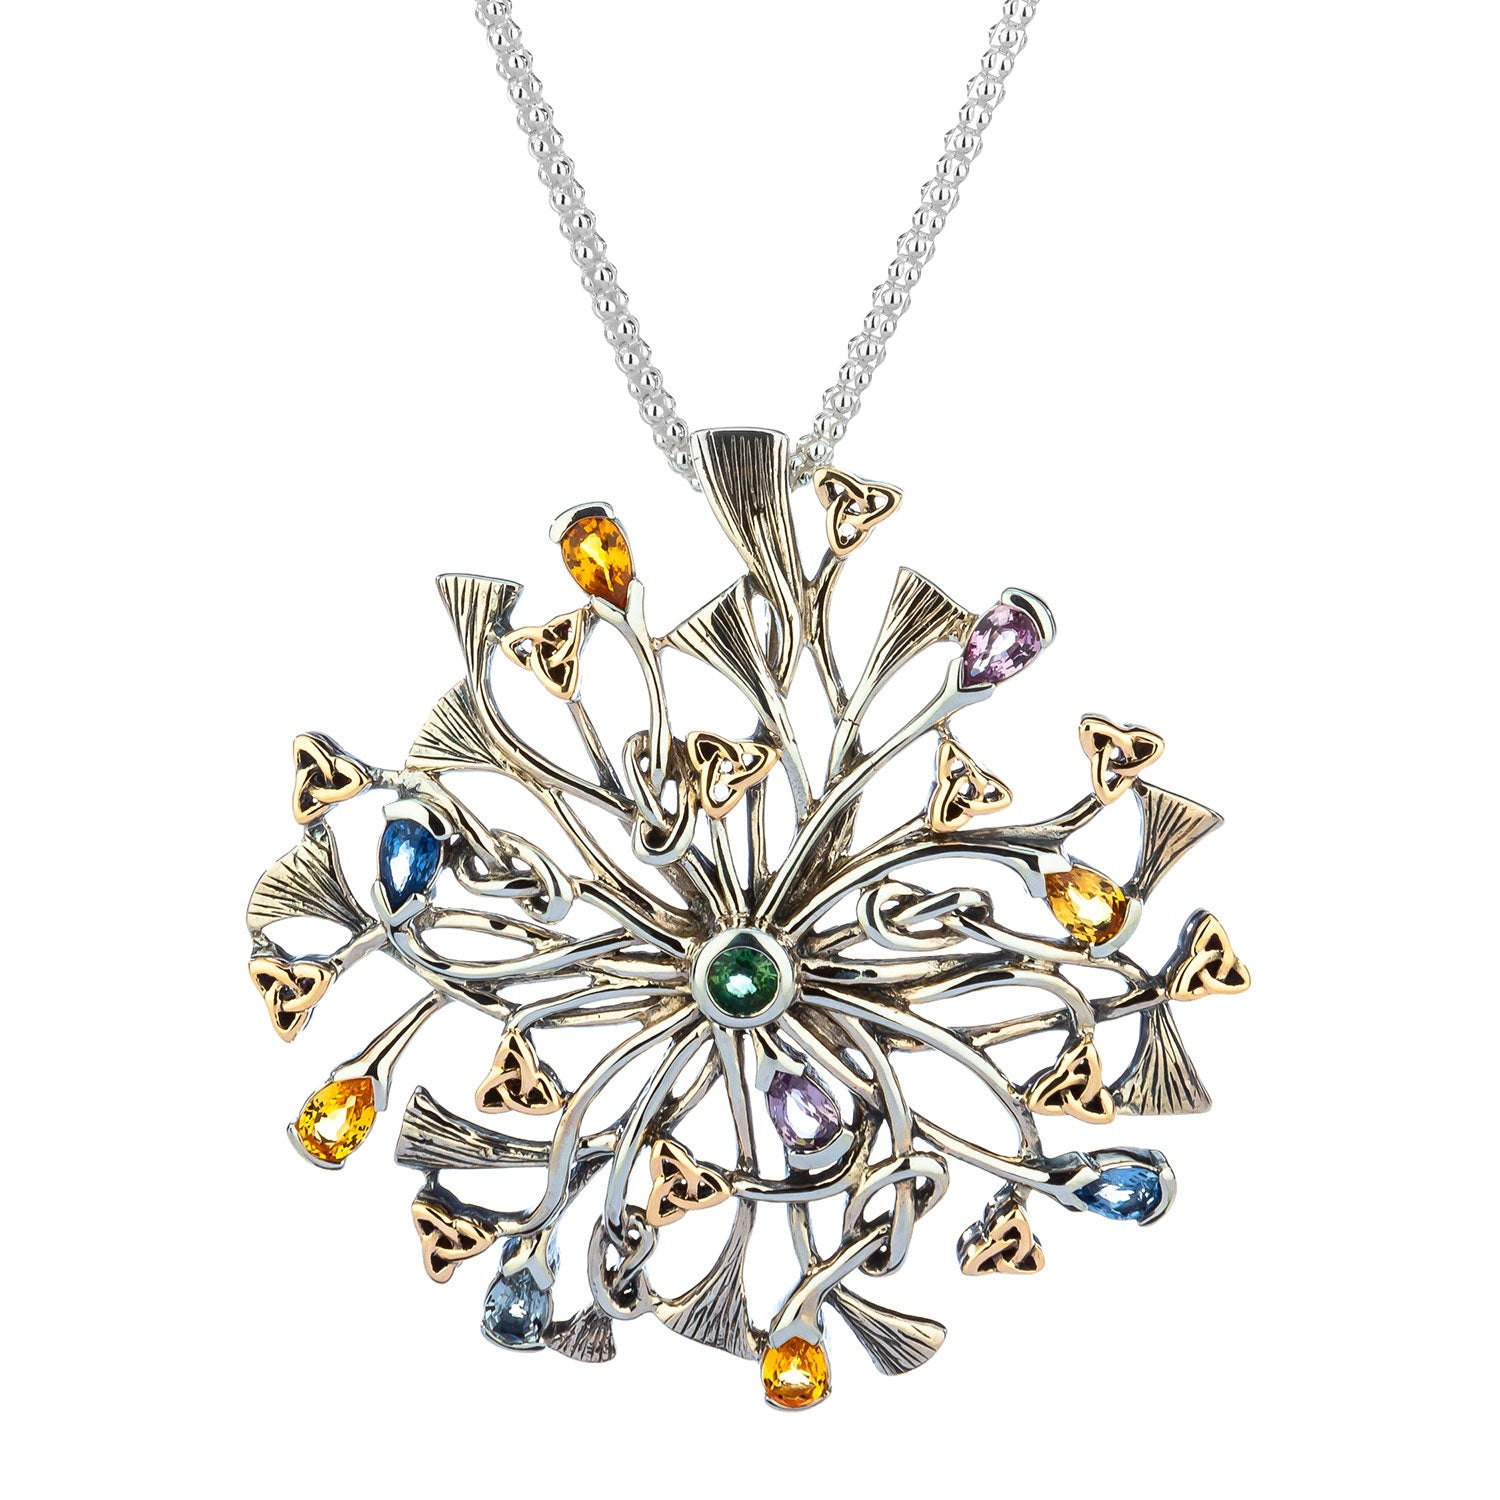 Pendant 10k Rhapsody with 3.5mm Pear Shaped Multicolored Sapphire Pendant from welch and company jewelers near syracuse ny